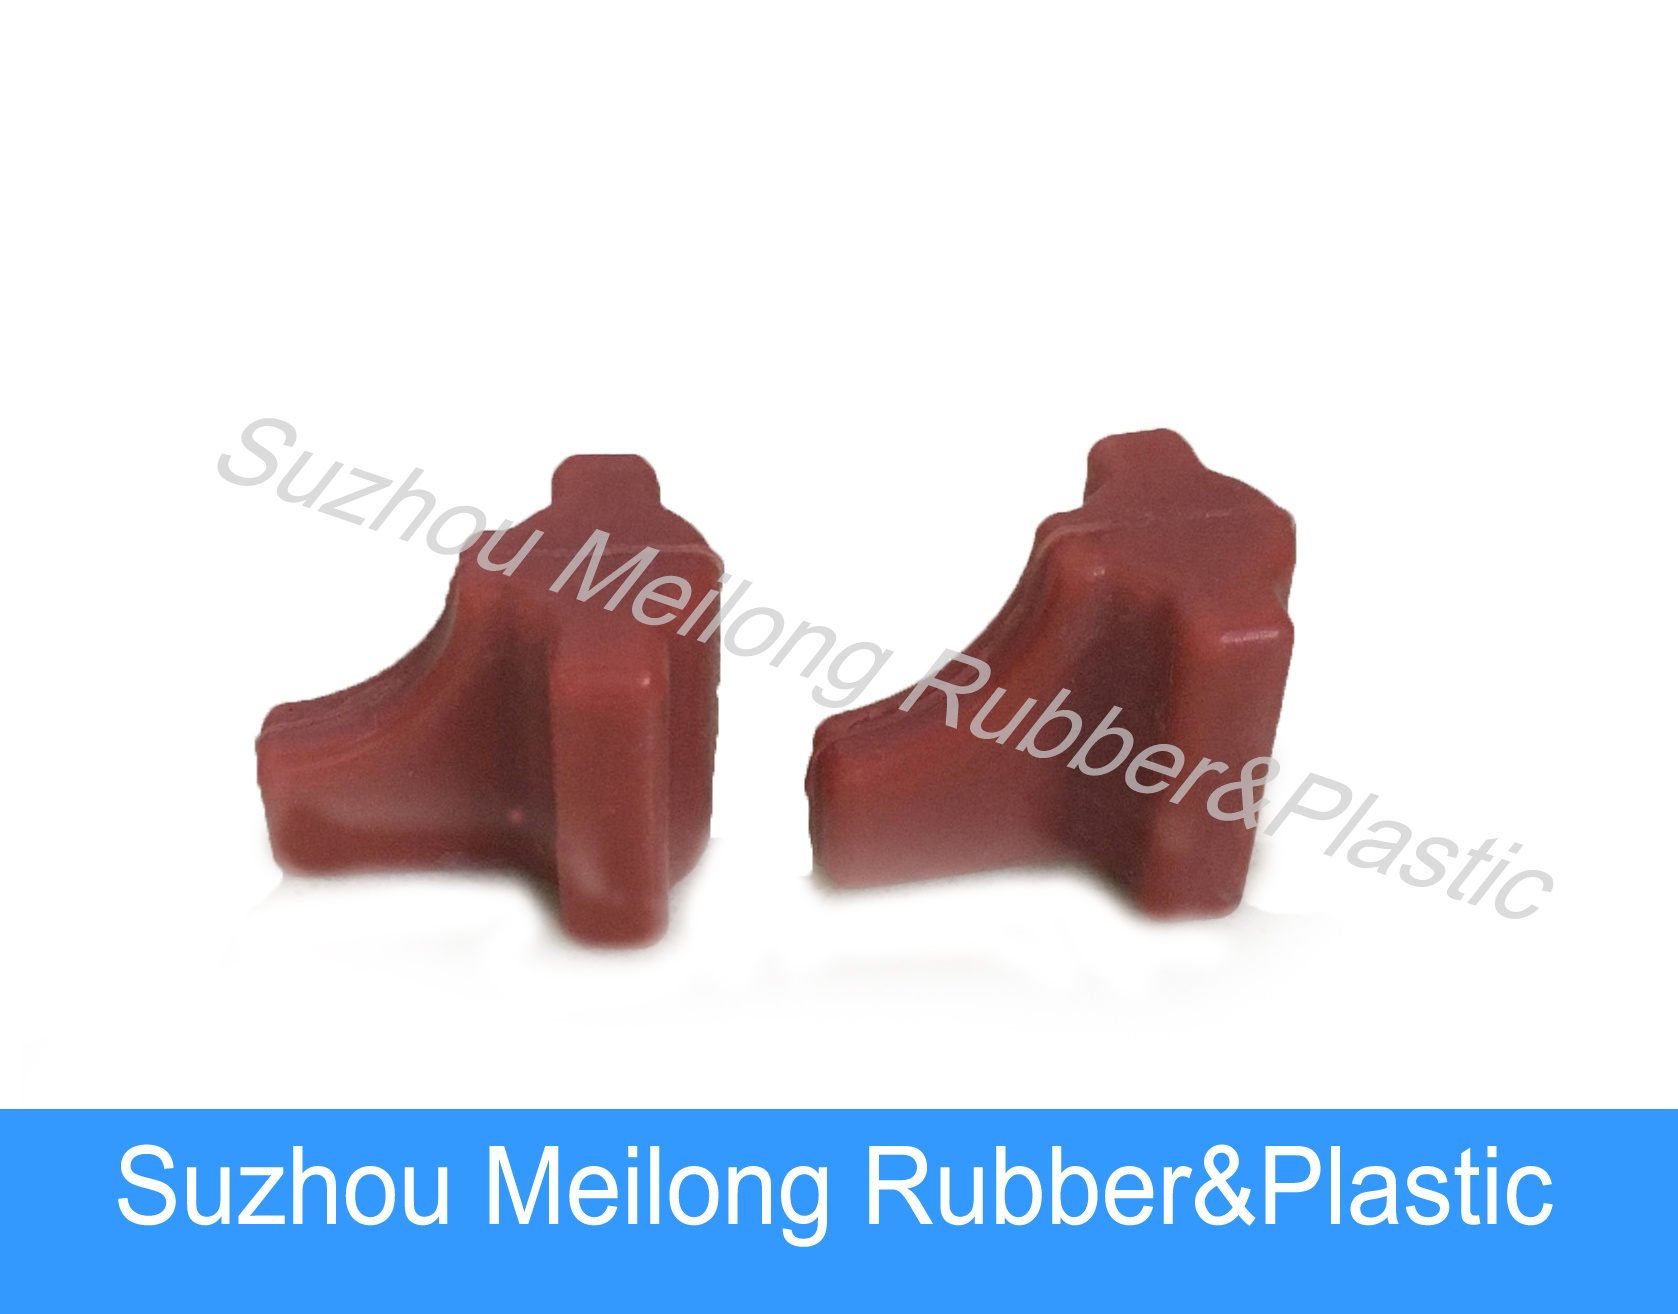 High Quality Silicone Rubber Parts for Automobile and Industrial Components